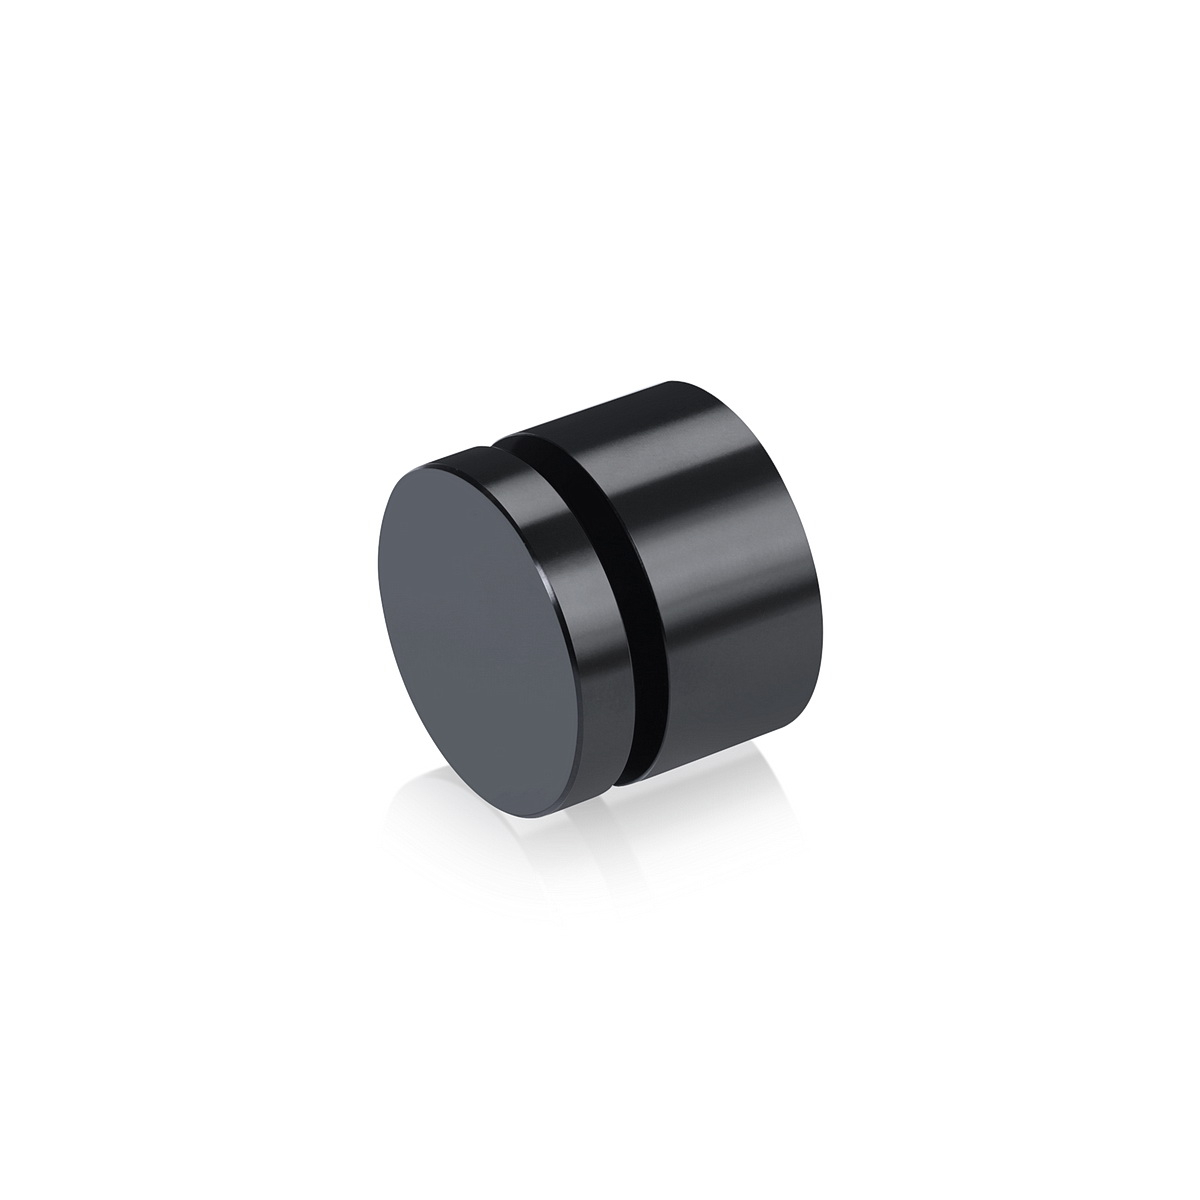 Affordable Aluminum Standoffs, Diameter: 1'', Standoff: 1/2'', Aluminum Black Finish